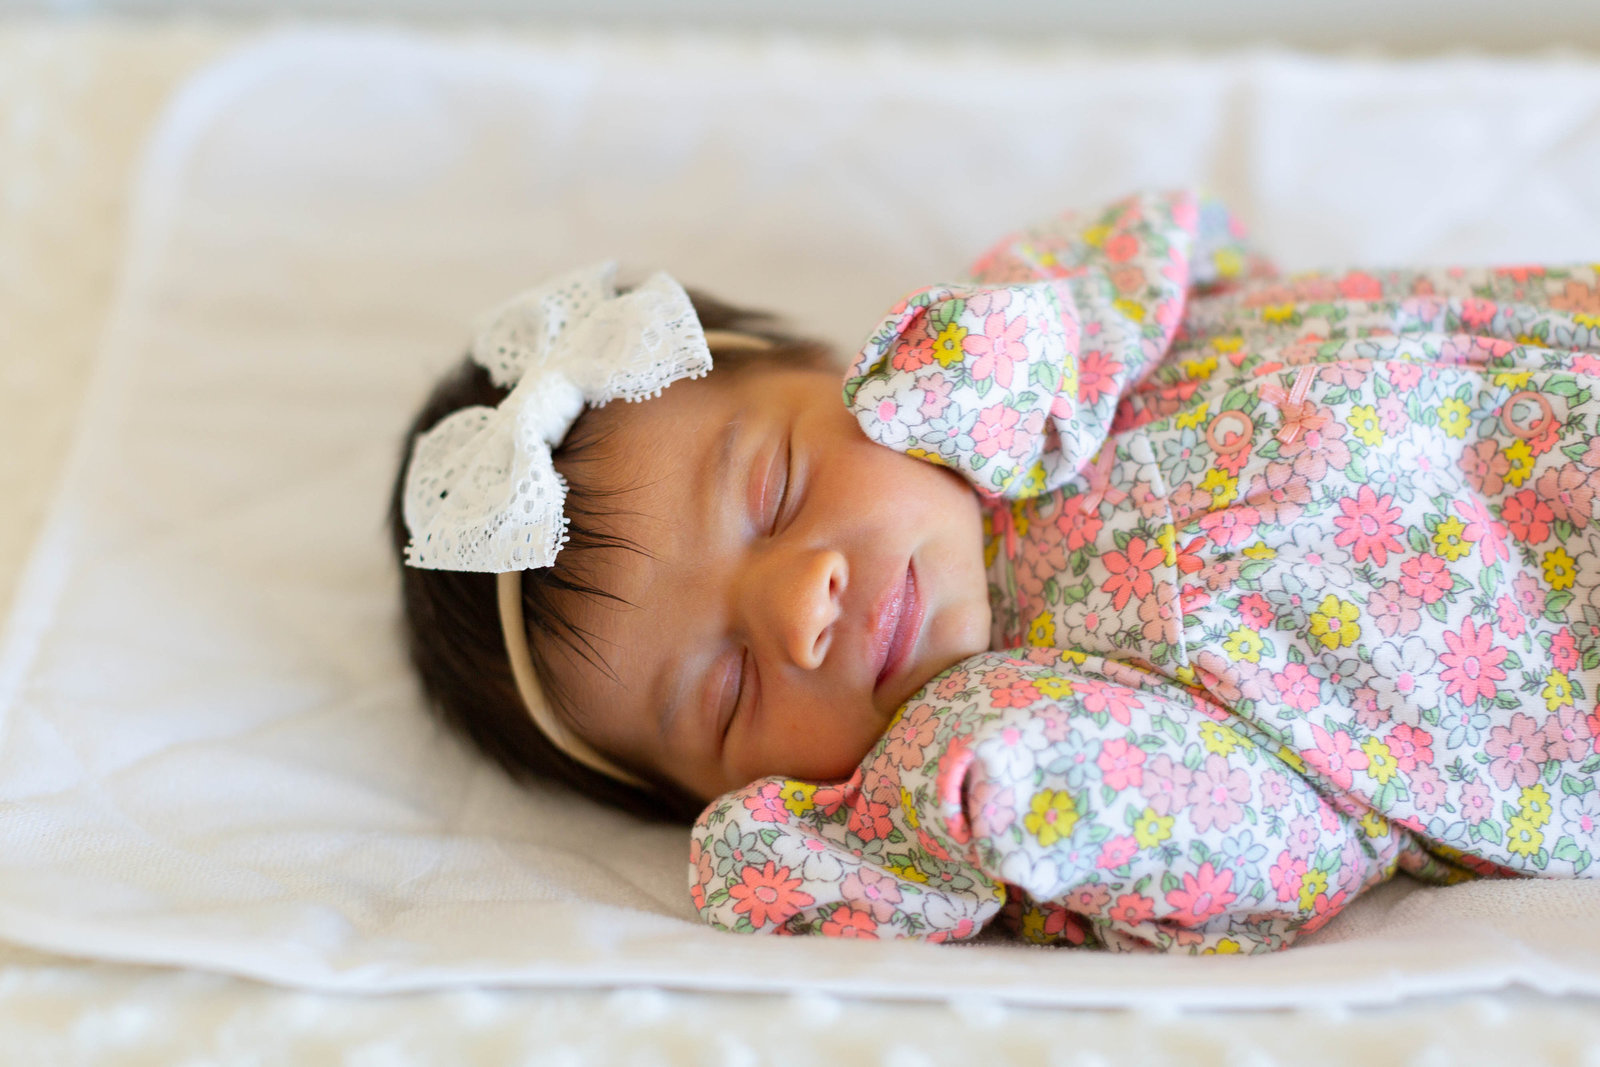 Penelope-newborn (107 of 114)